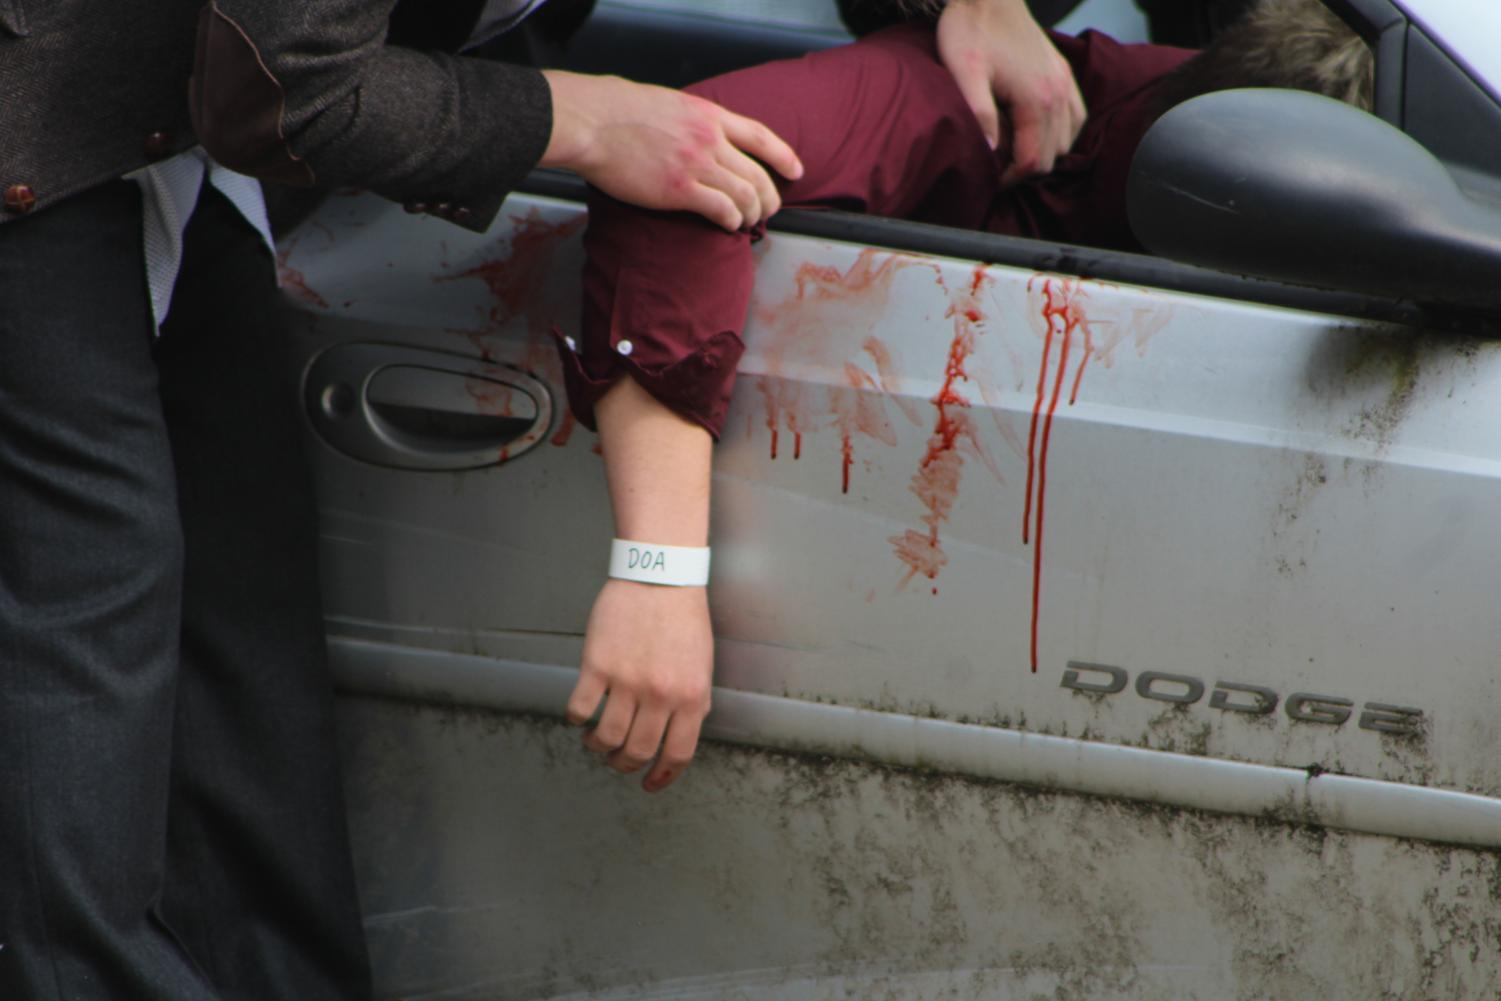 Avery Schuette's hand after the crash occured.